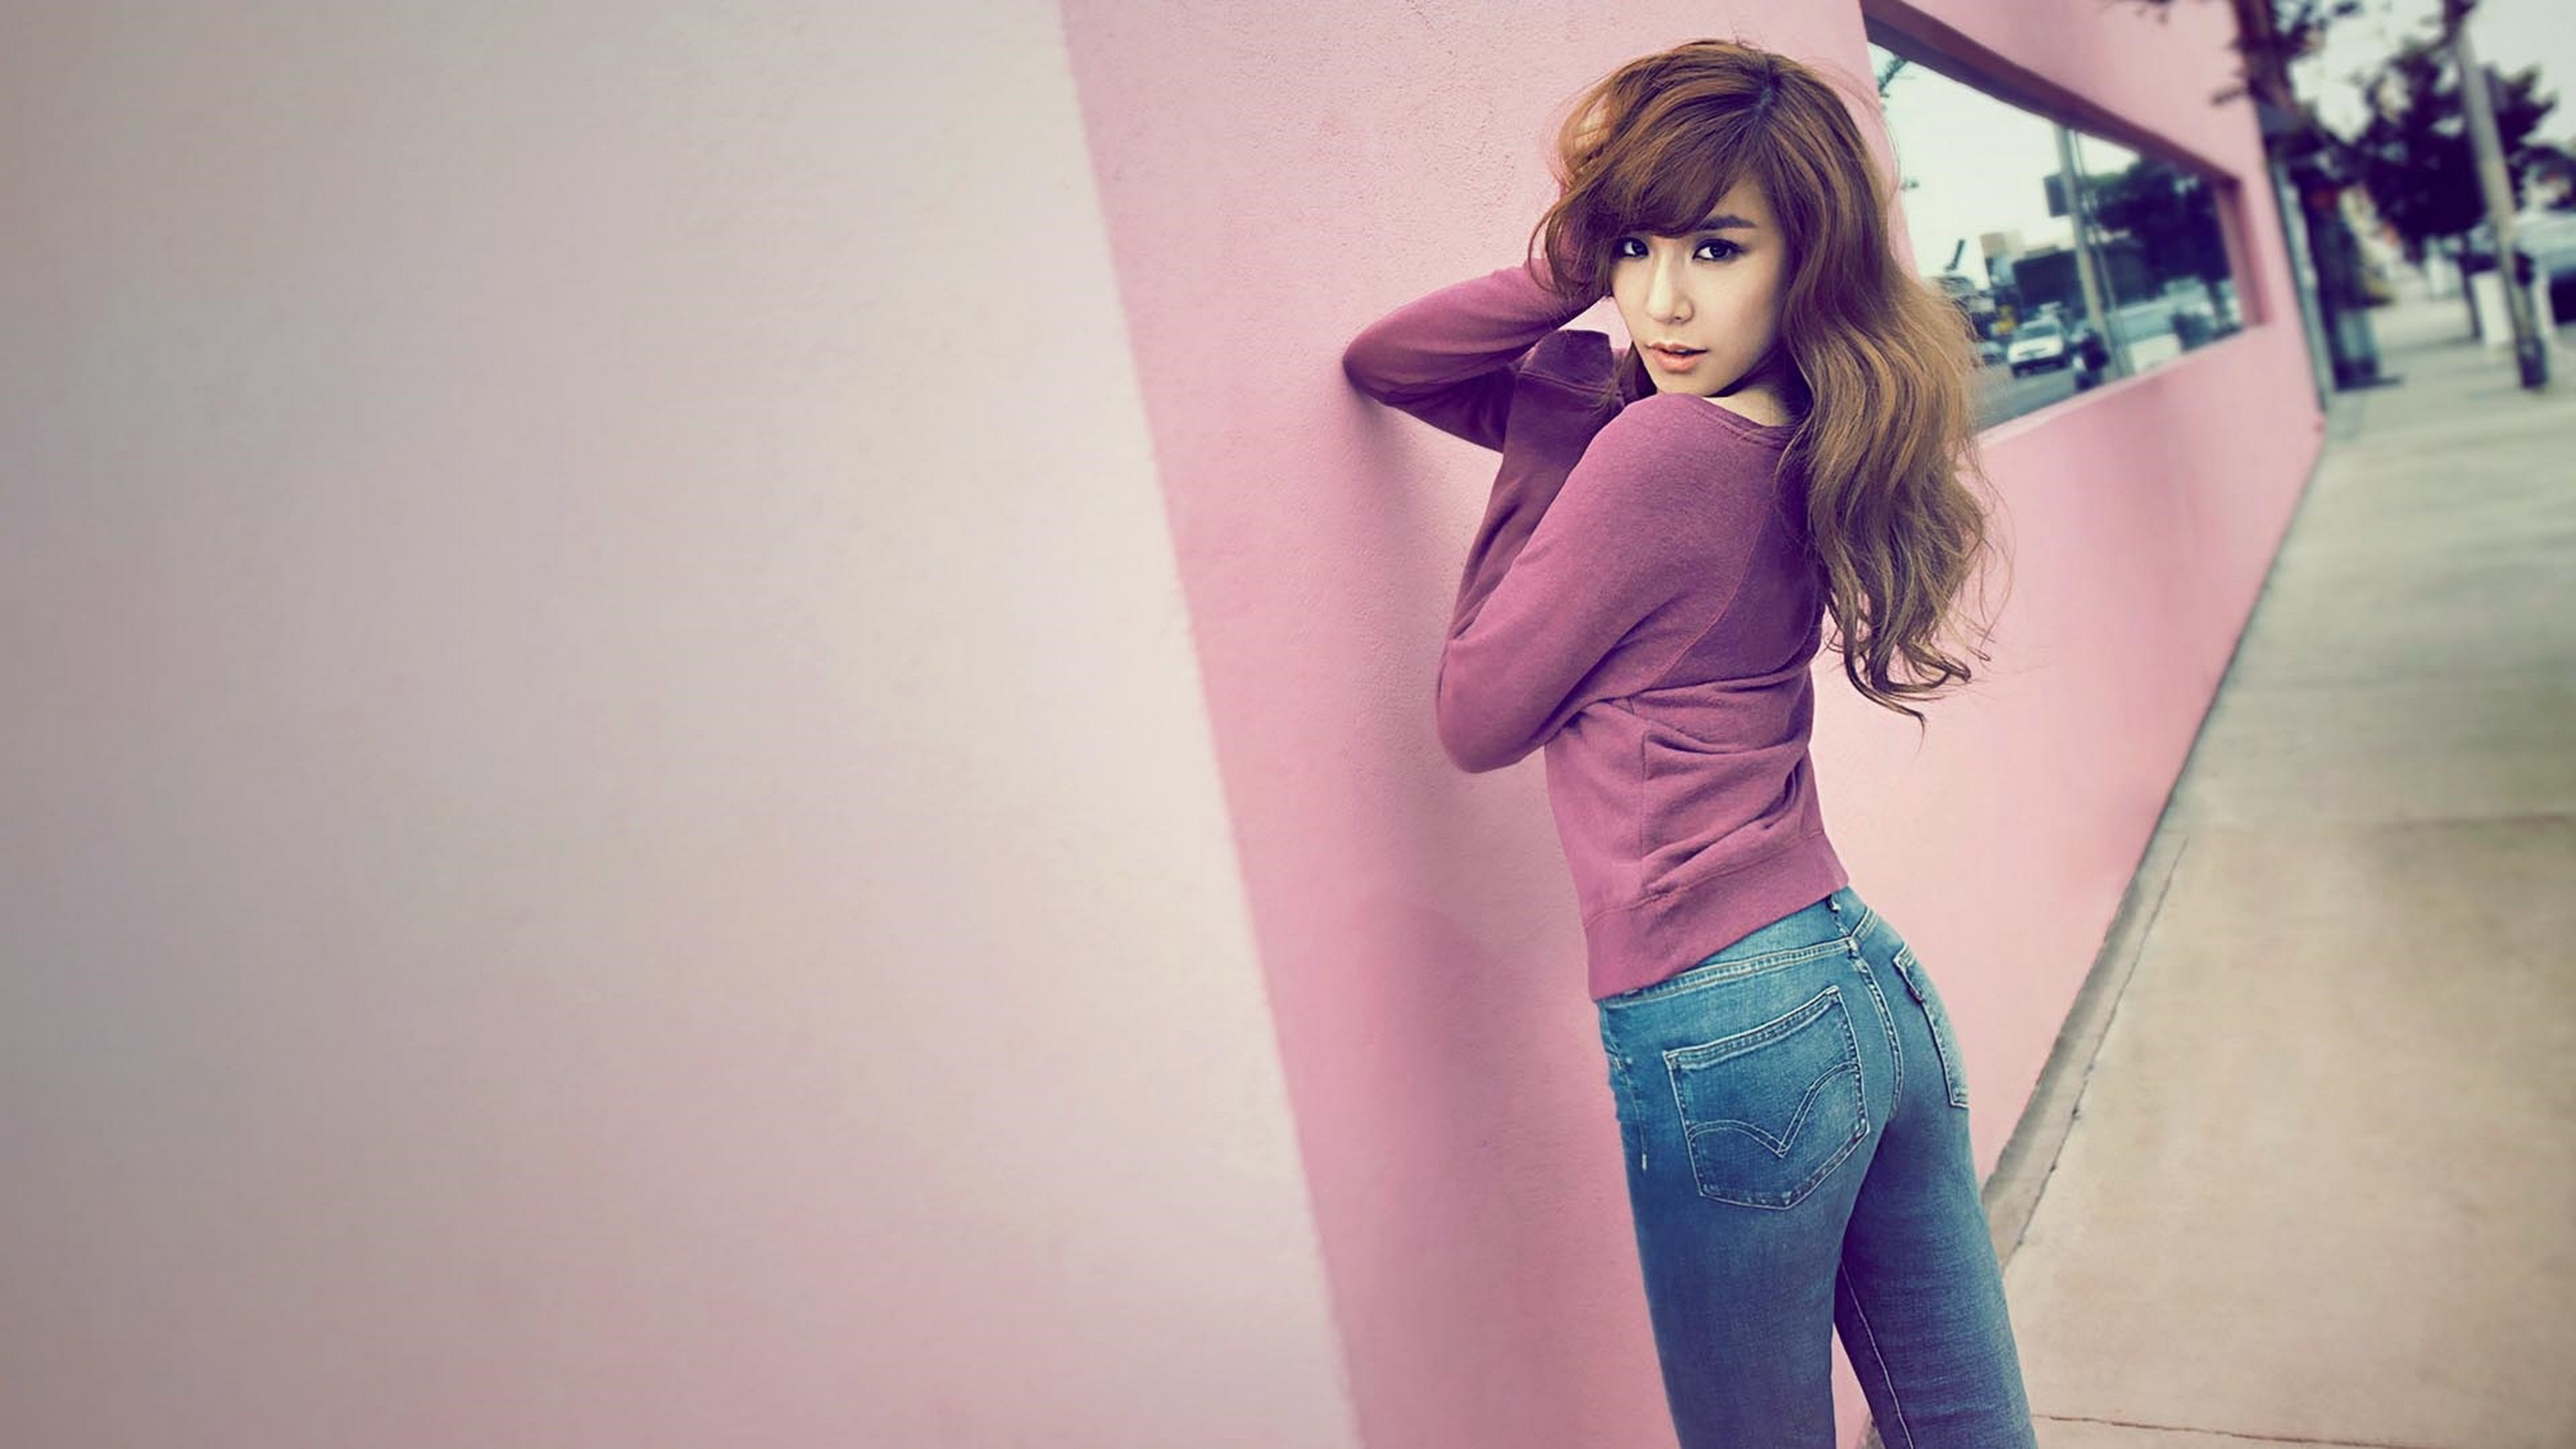 snsd 4k ultra hd wallpaper and background image